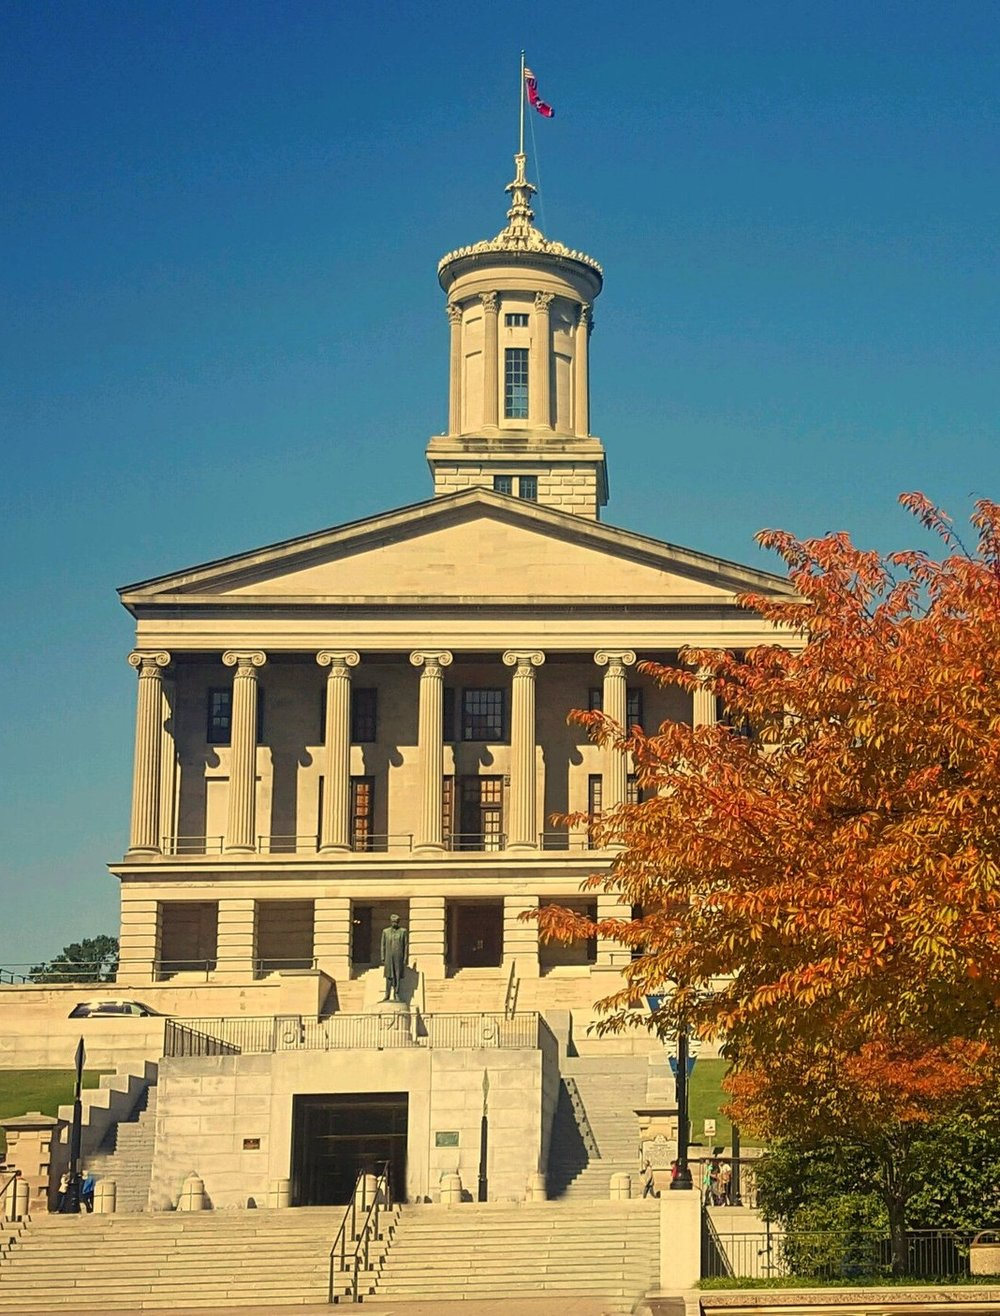 OUR MISSION: - Influence.The experts at Harris Frazier have a wealth of experience monitoring and lobbying the legislative and executive branches of Tennessee state government.In addition to being knowledgeable advocates for their clients, they also work hard to keep the firm's excellent reputation for high ethical standards.